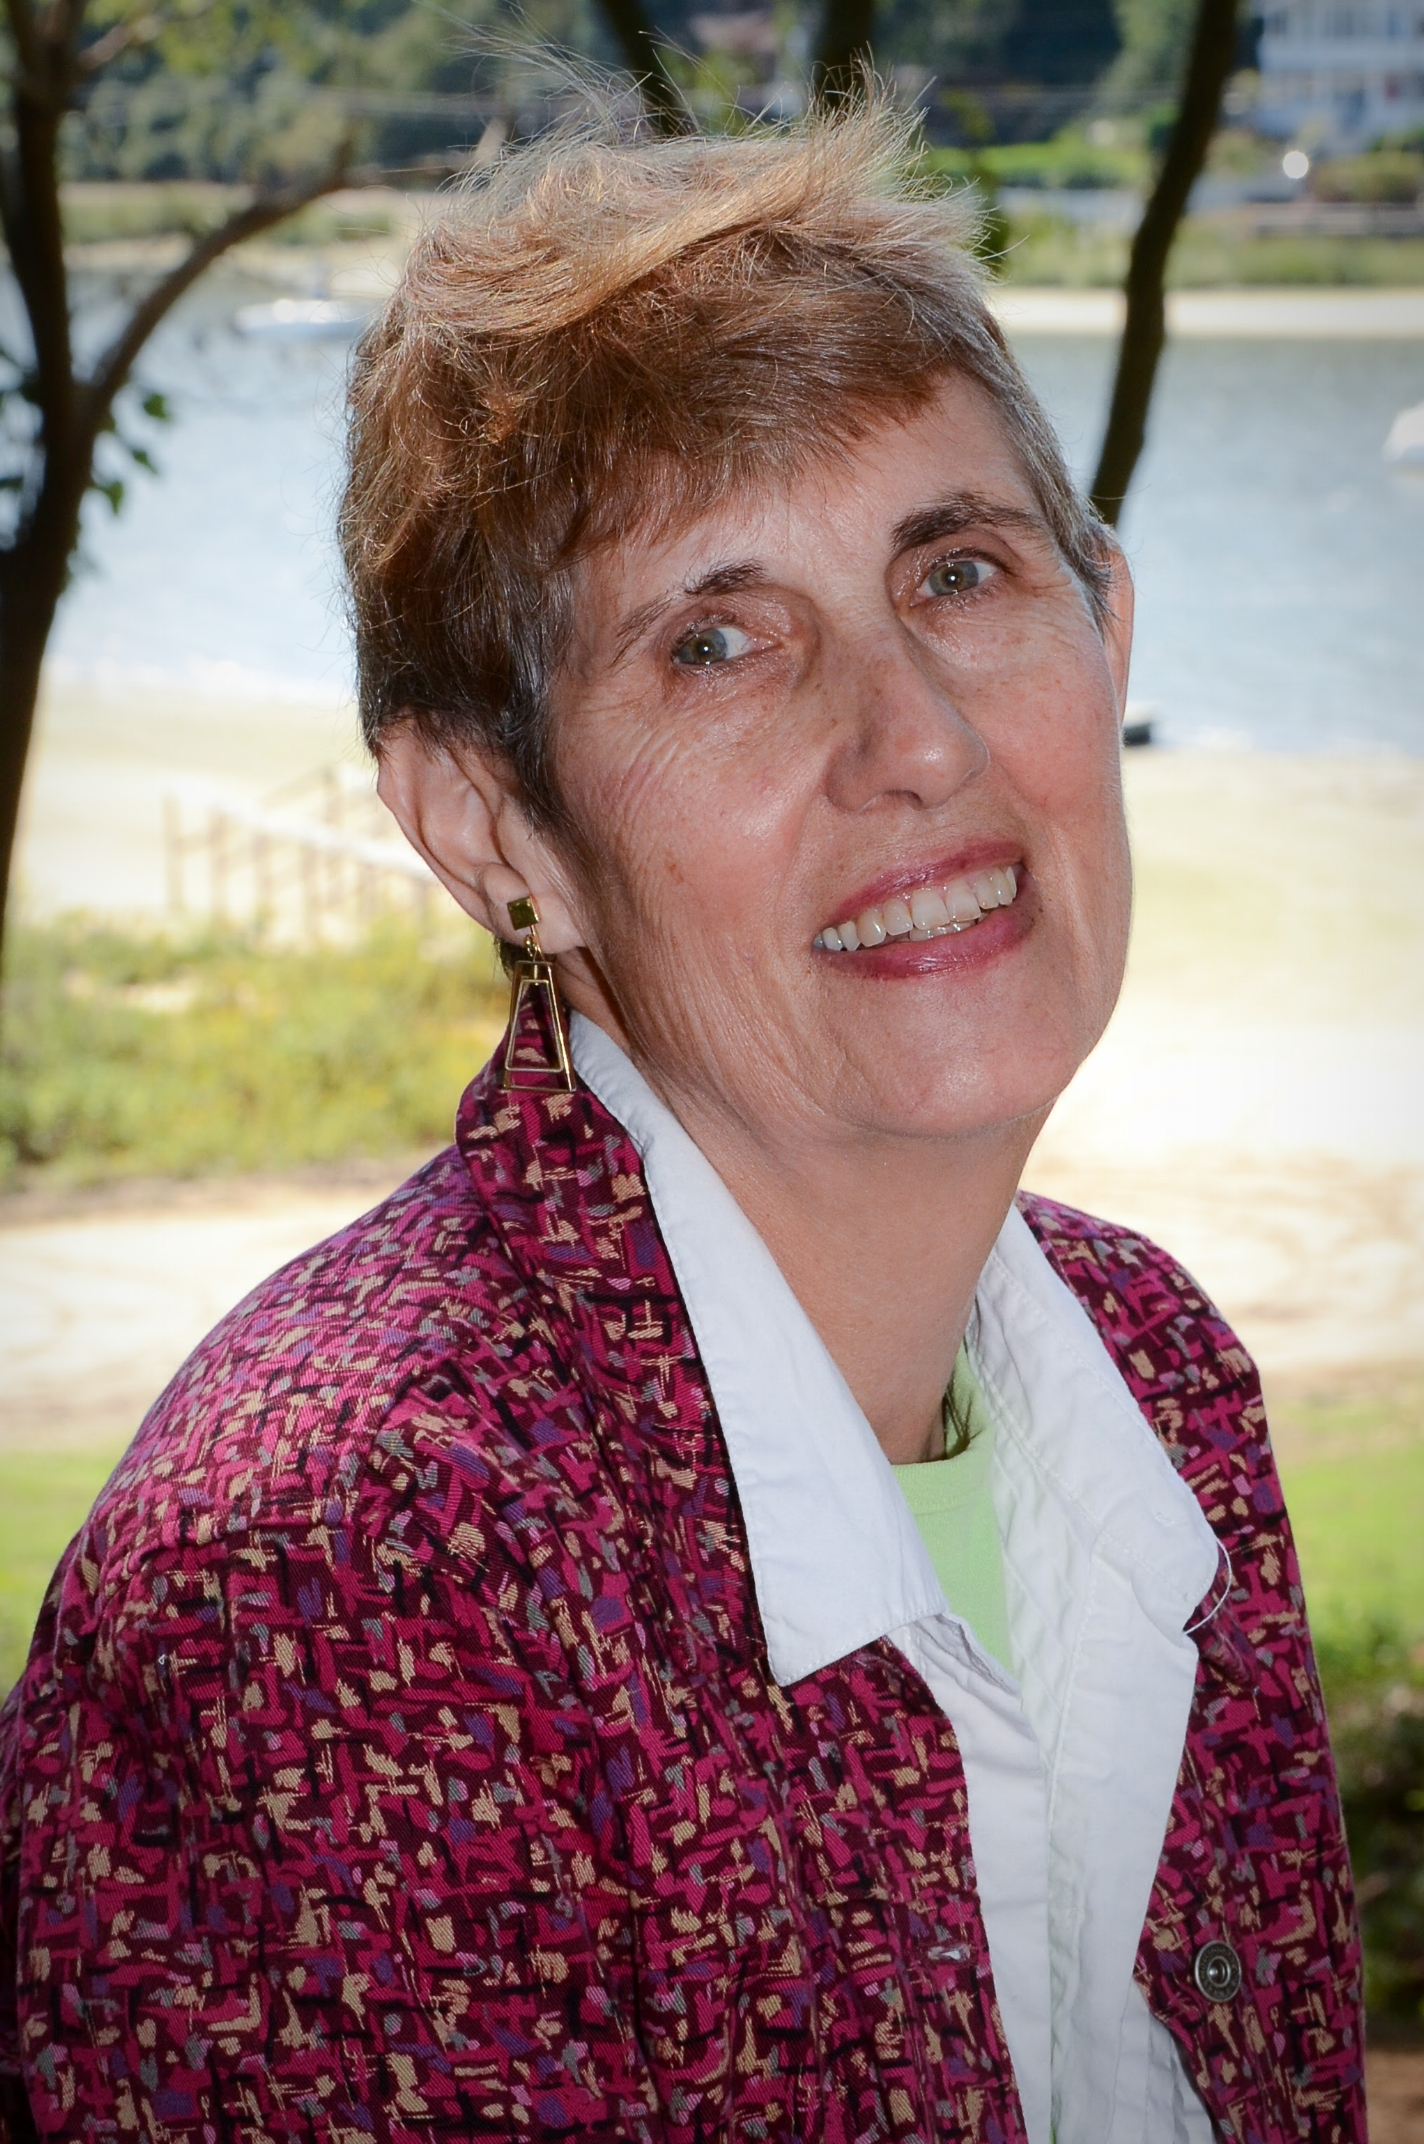 cami thompson, co-founder and upper elementary teacher    years at lol:  all of them   experience:  AMS Elementary 6-12 credential from cmte/ny, ams elementary 6-9 credential from cmte/ny, ami 3-6 credential from wmi, transvaal teachers' higher diploma from johannesburg college of education, ba in history and ba honors in literacy from university of the witwatersrand   When did you start teaching?  I started way back when the world was new I tell the kids iVe been at it for 167 years.   what is you favorite part?  I love to see the kid who finally gets it.